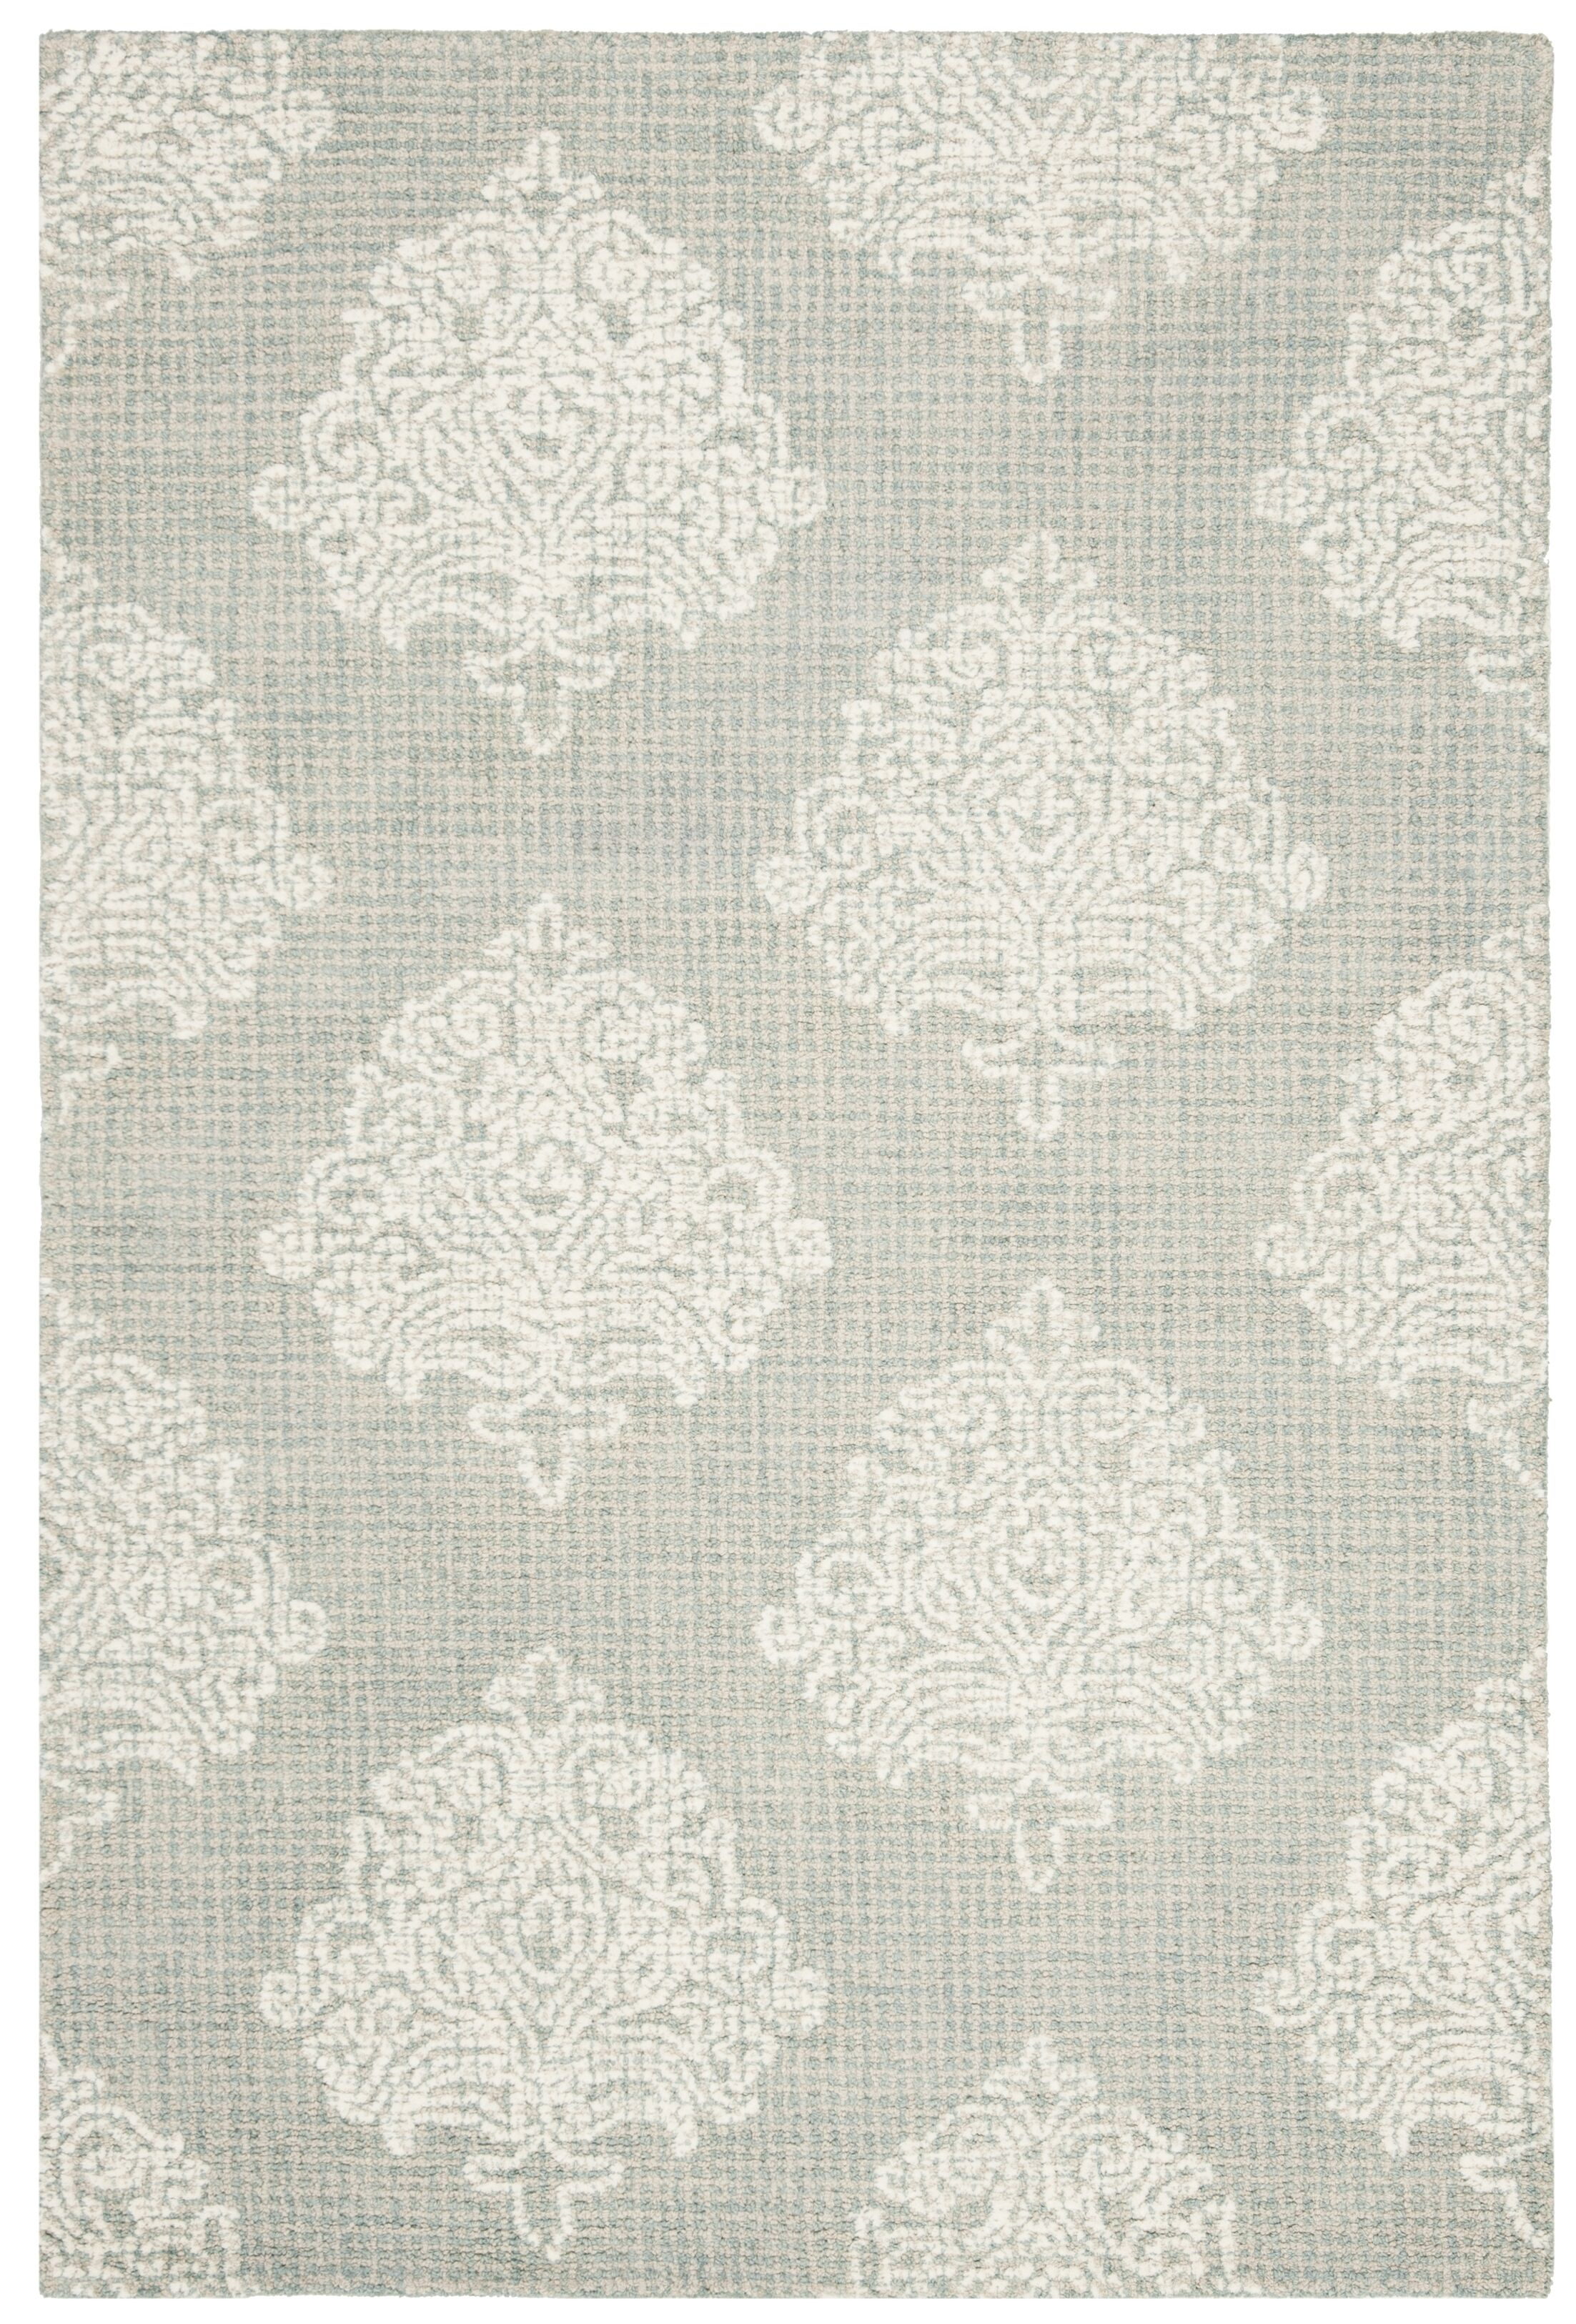 Sulema Hand-Tufted Wool Beige Area Rug Rug Size: Round 6' x 6'